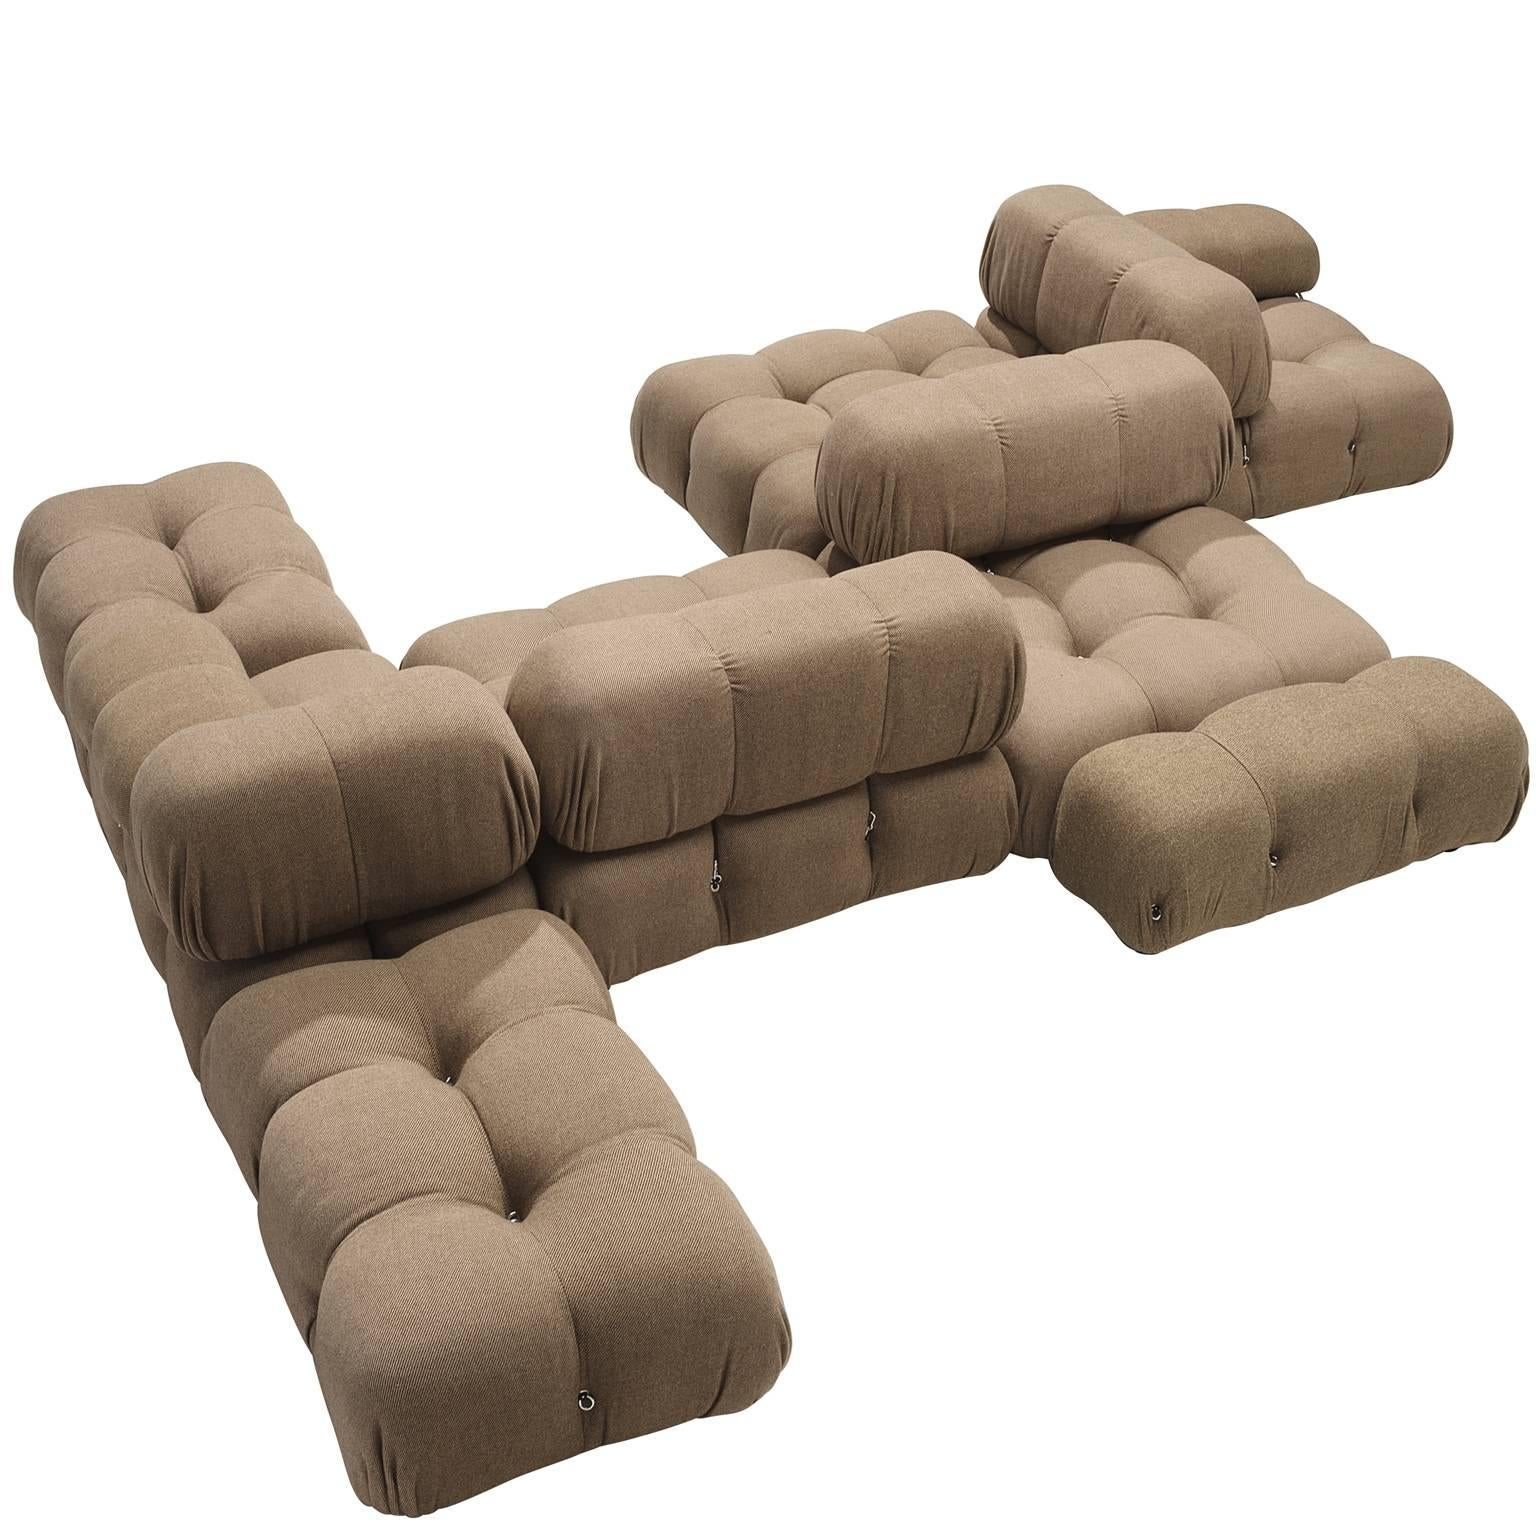 Couchtisch Stylefruits Modular Mbel Interesting Affordable Free Cattelan Italia With